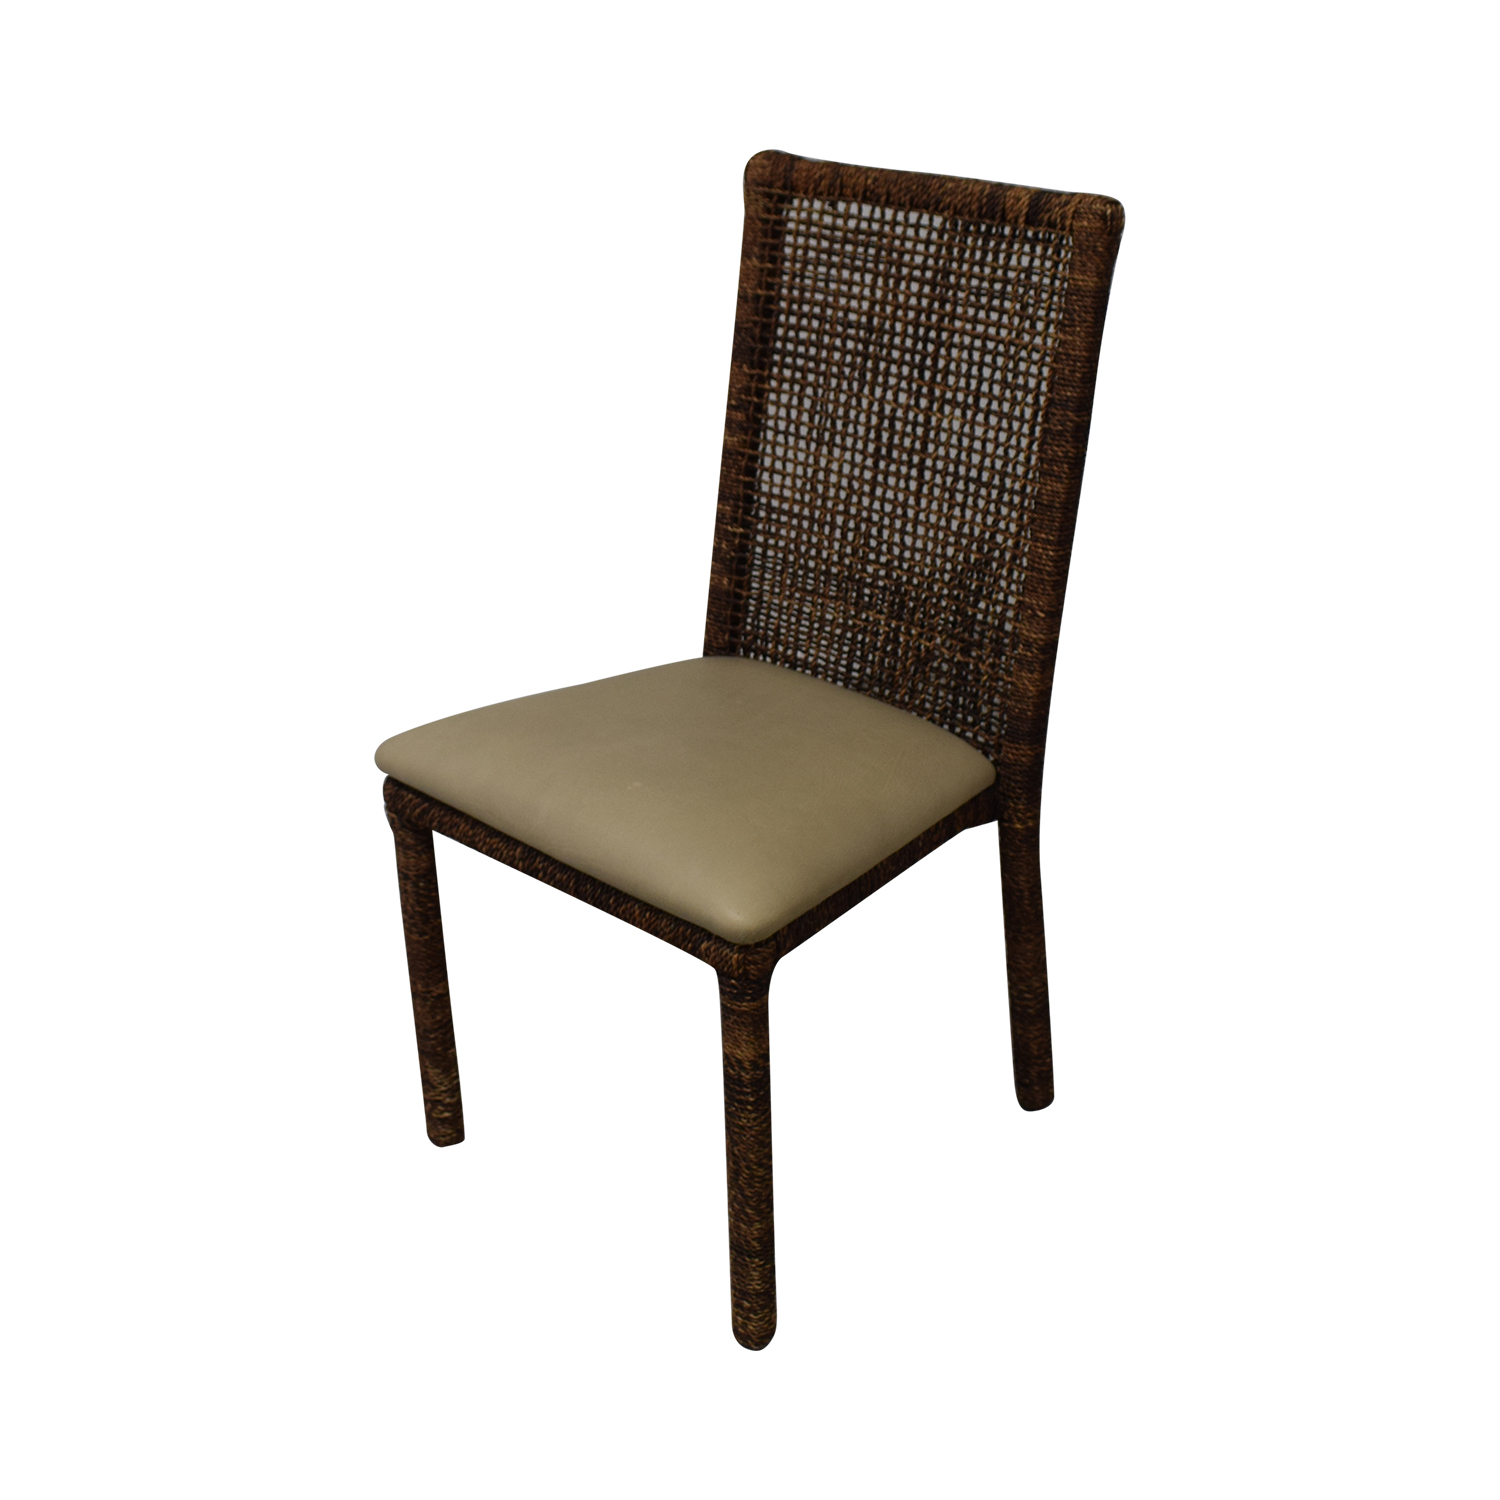 Upholstered Wicker Dining Chairs With Extendable Table discount